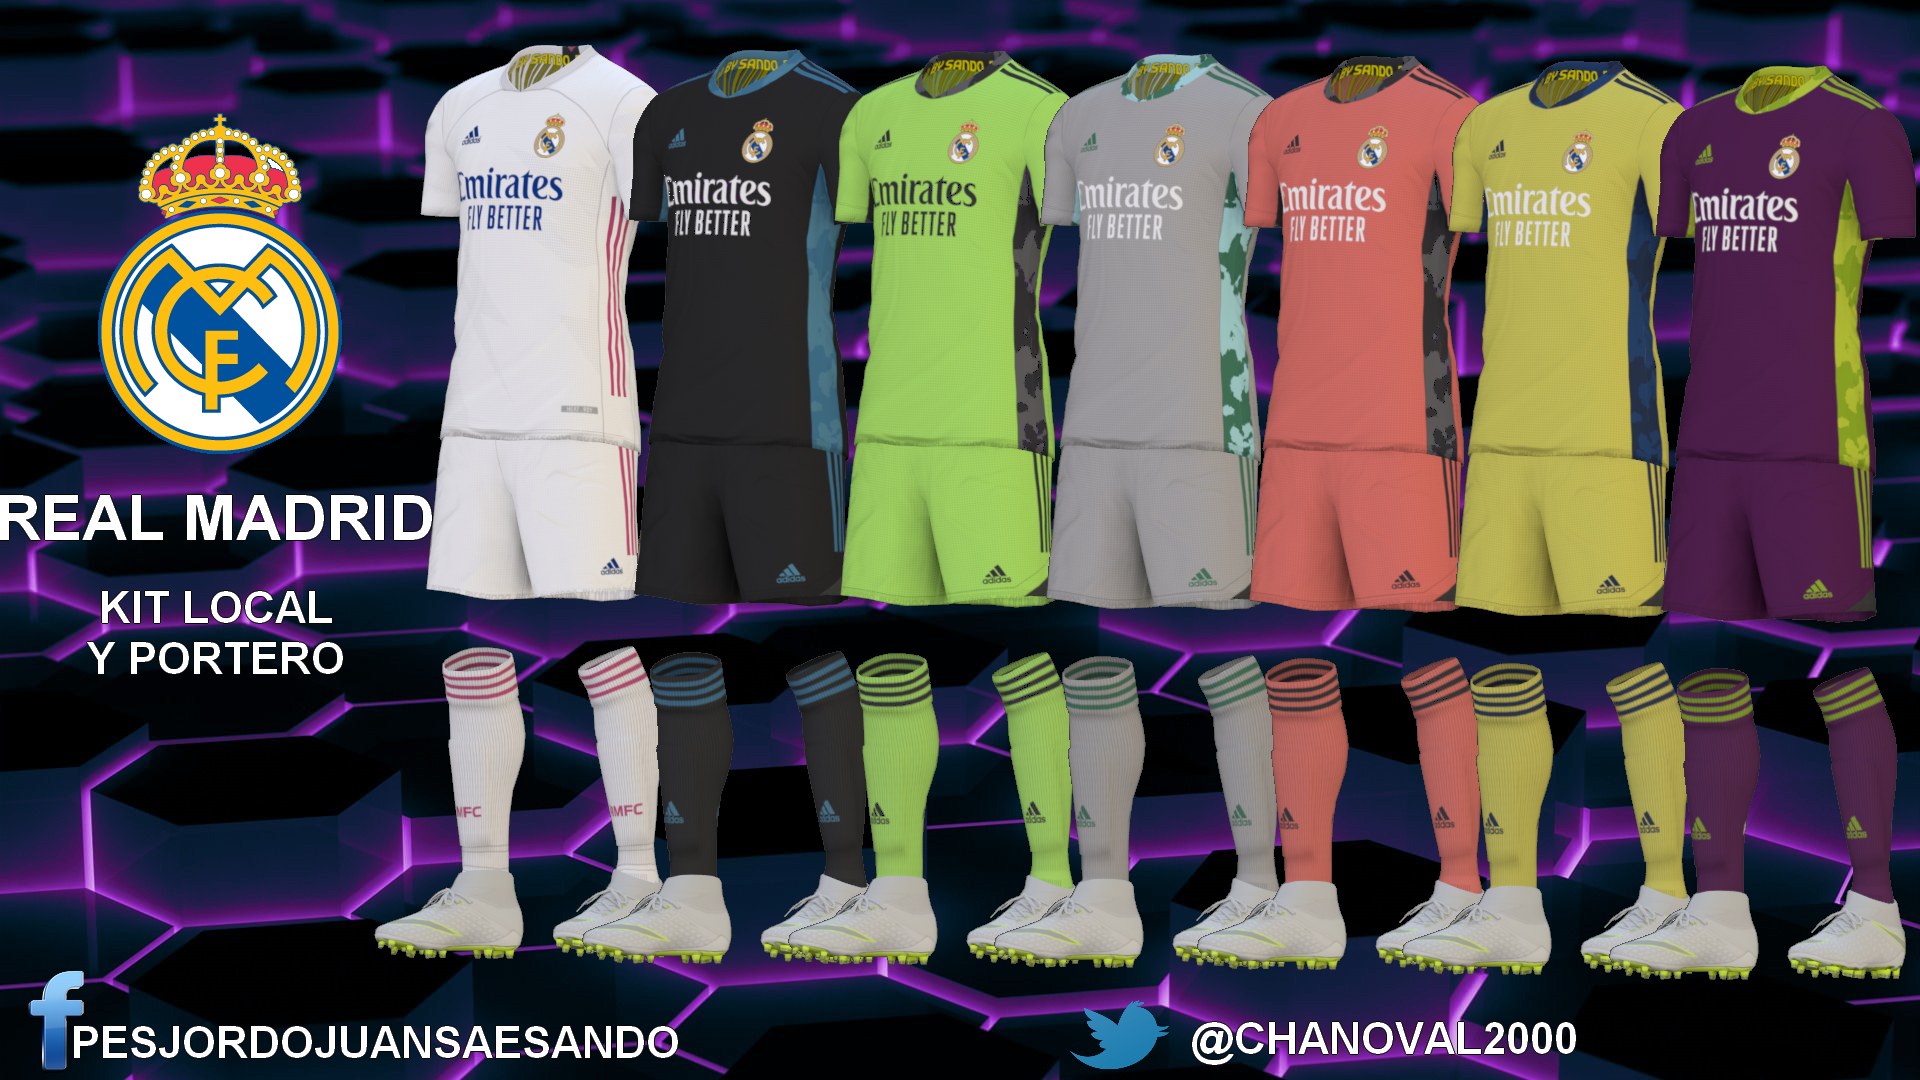 Kits Real Madrid 2020/2021 by Sando